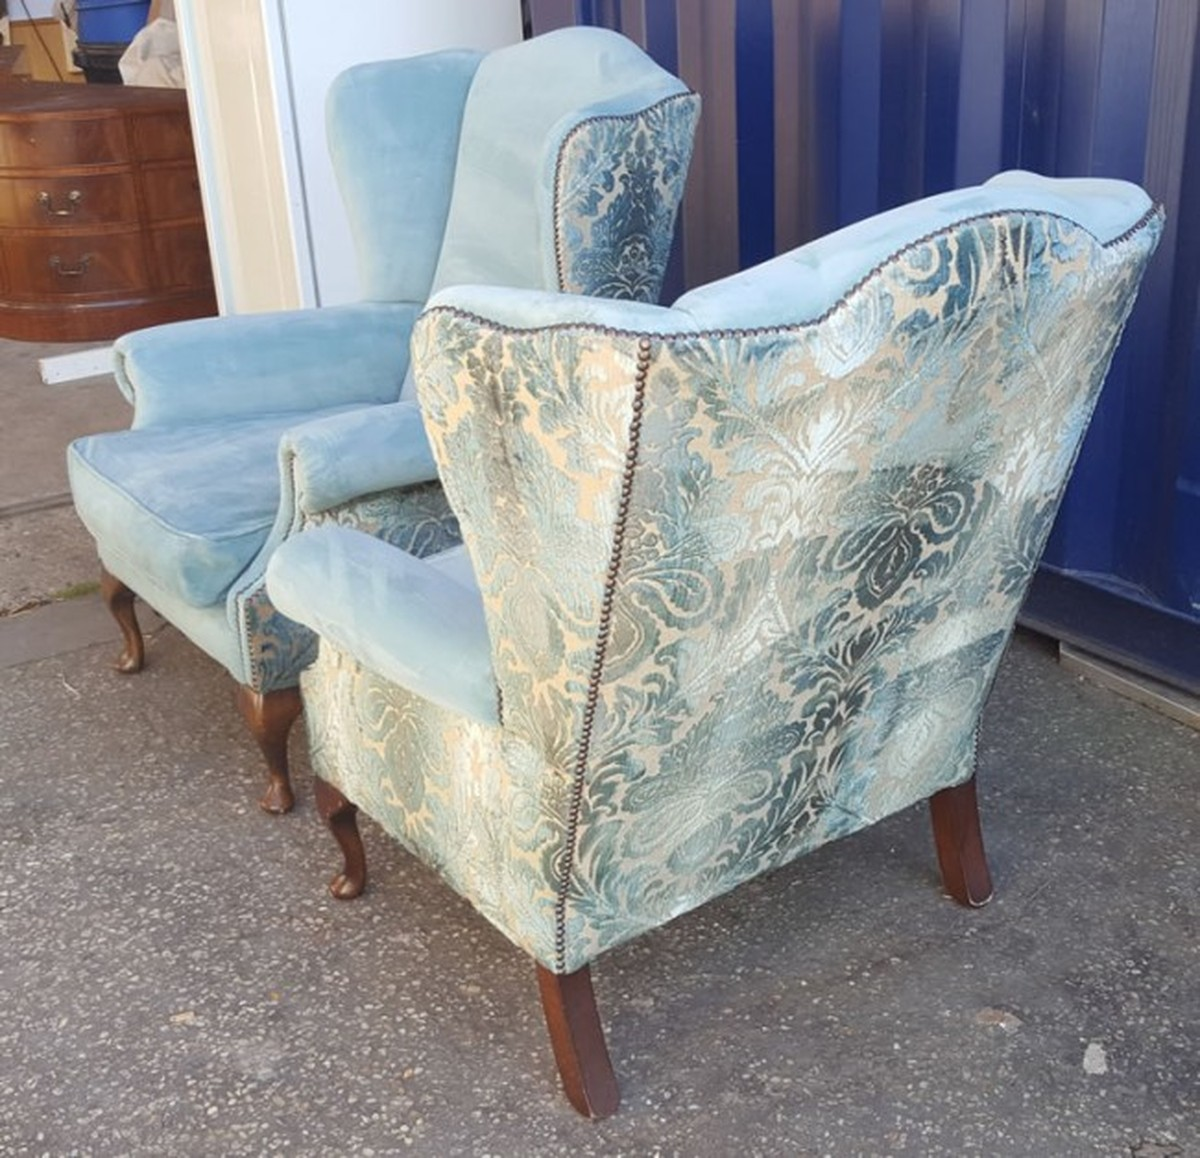 Secondhand Generators Mayfair Furniture Caterfair Cambridgeshire Luxury Pair Of Wingback